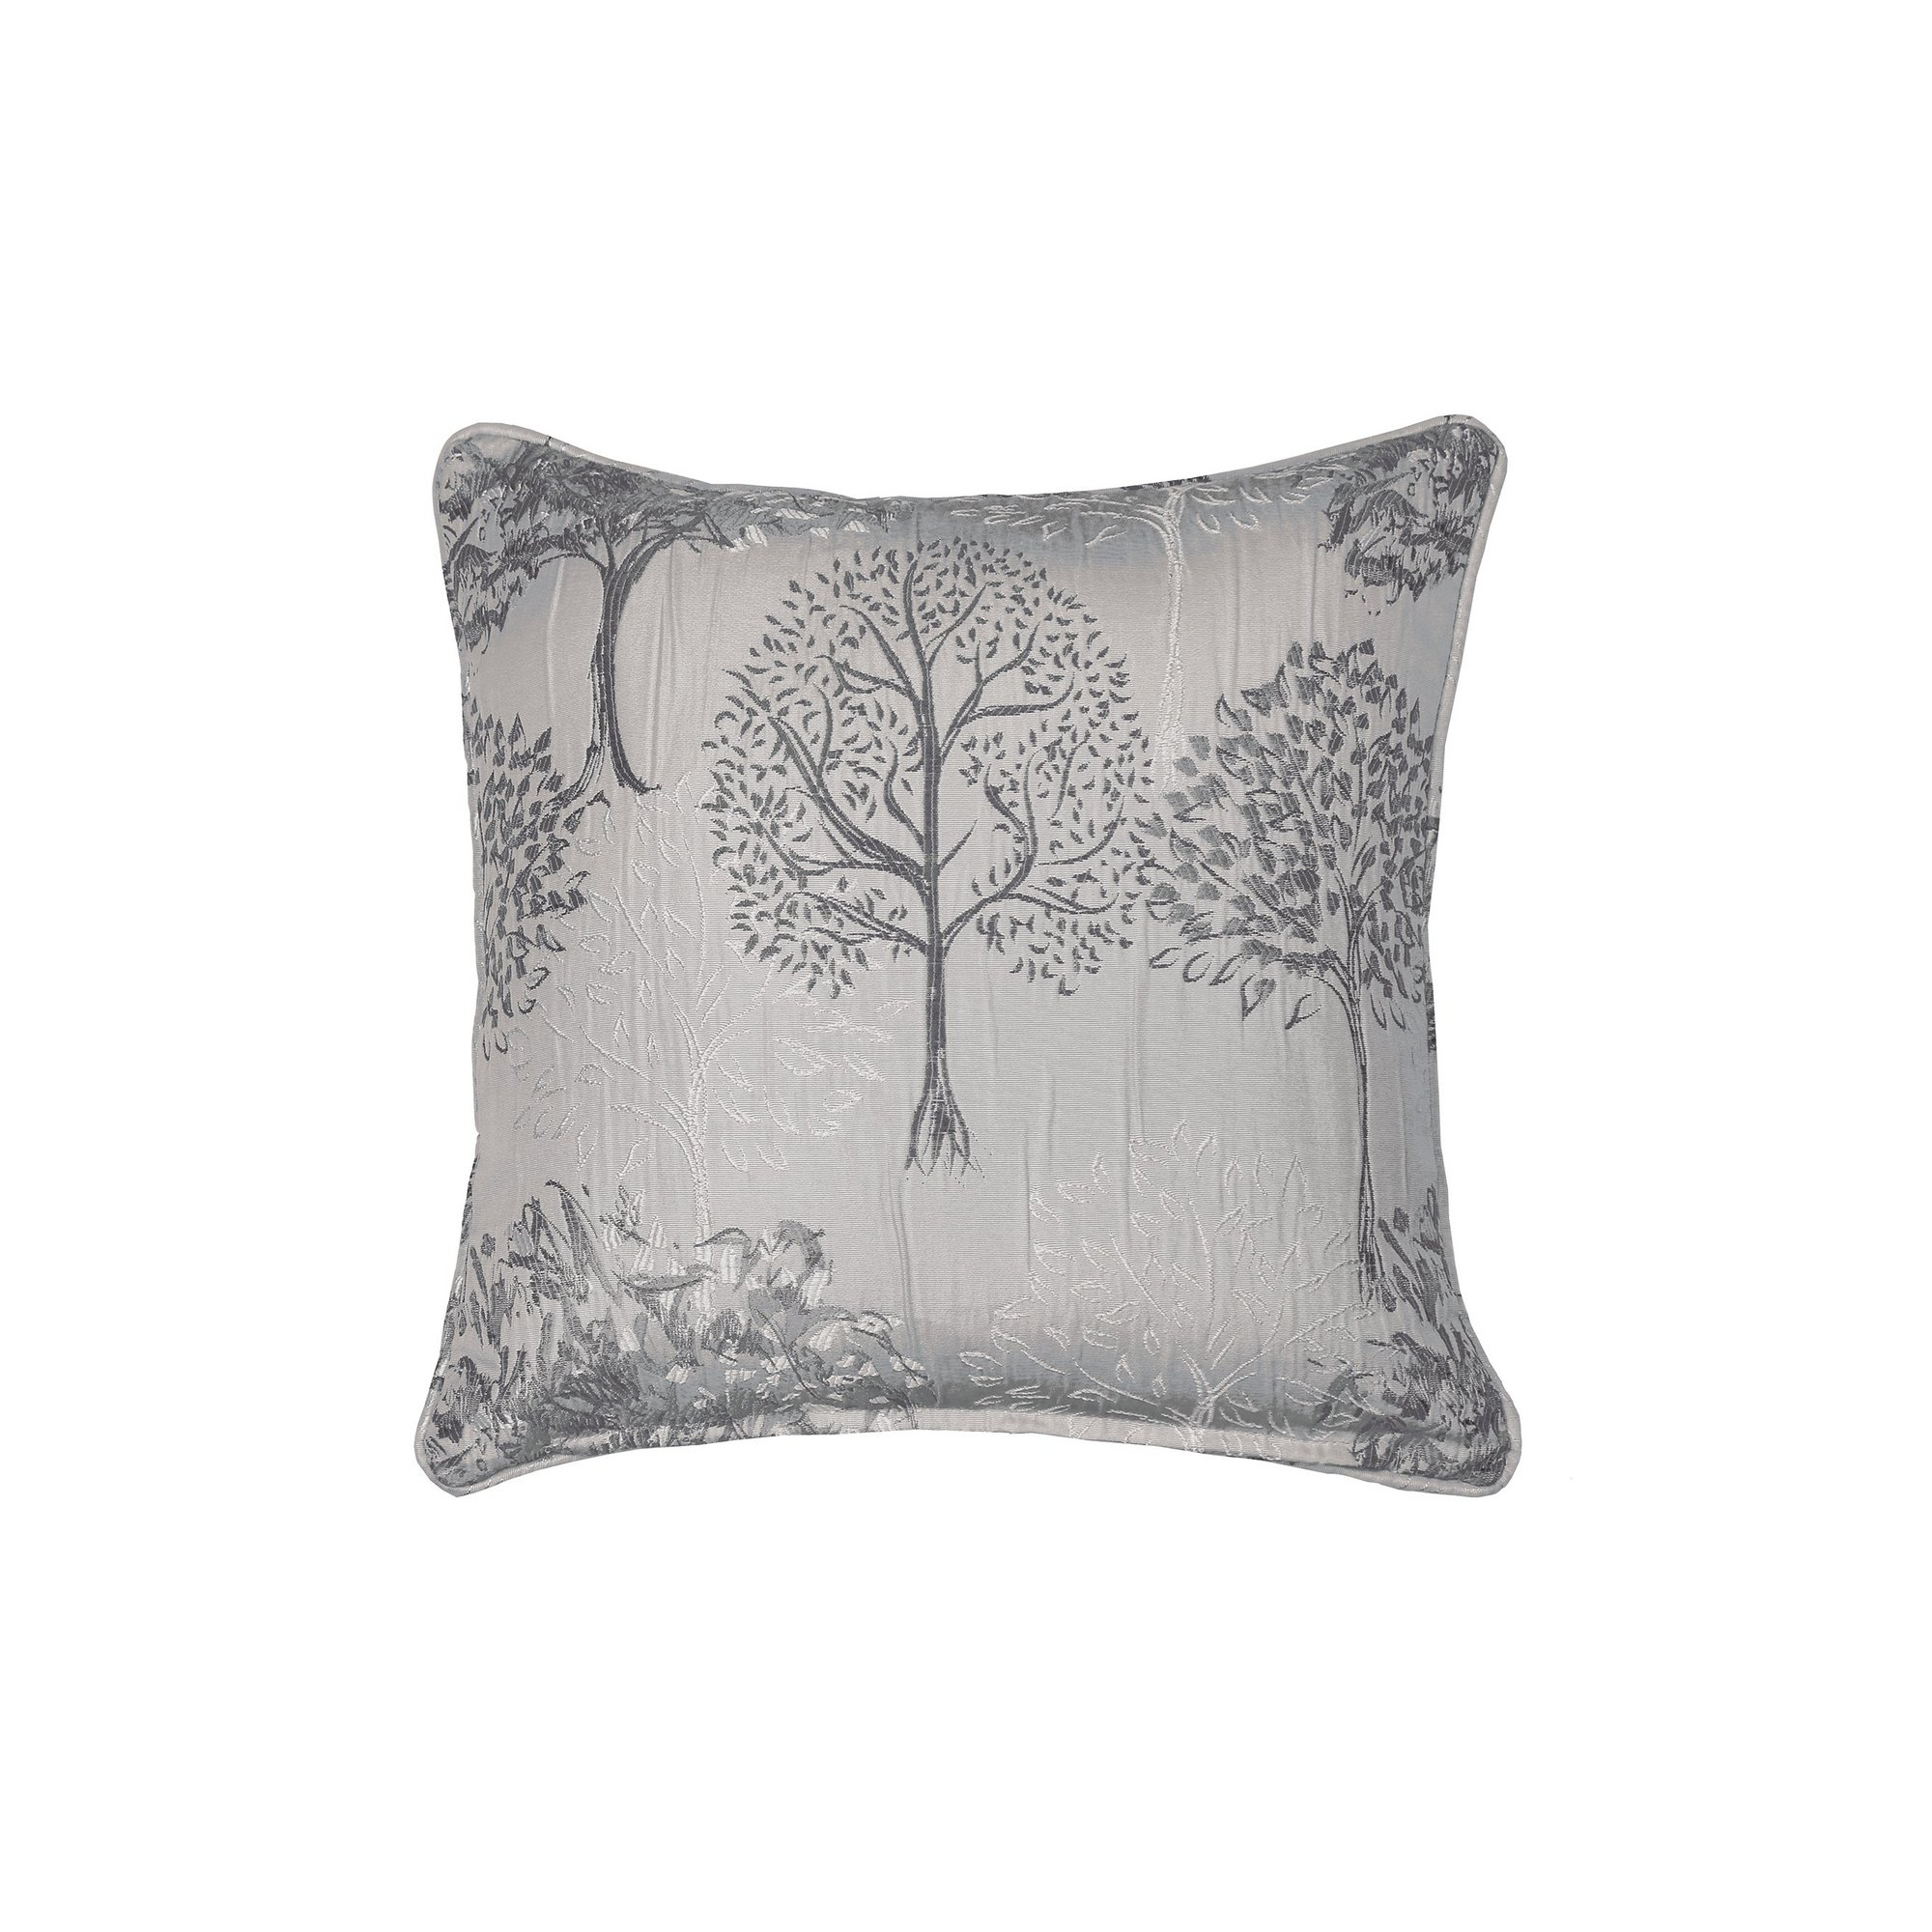 Image of Arden Cushion Cover